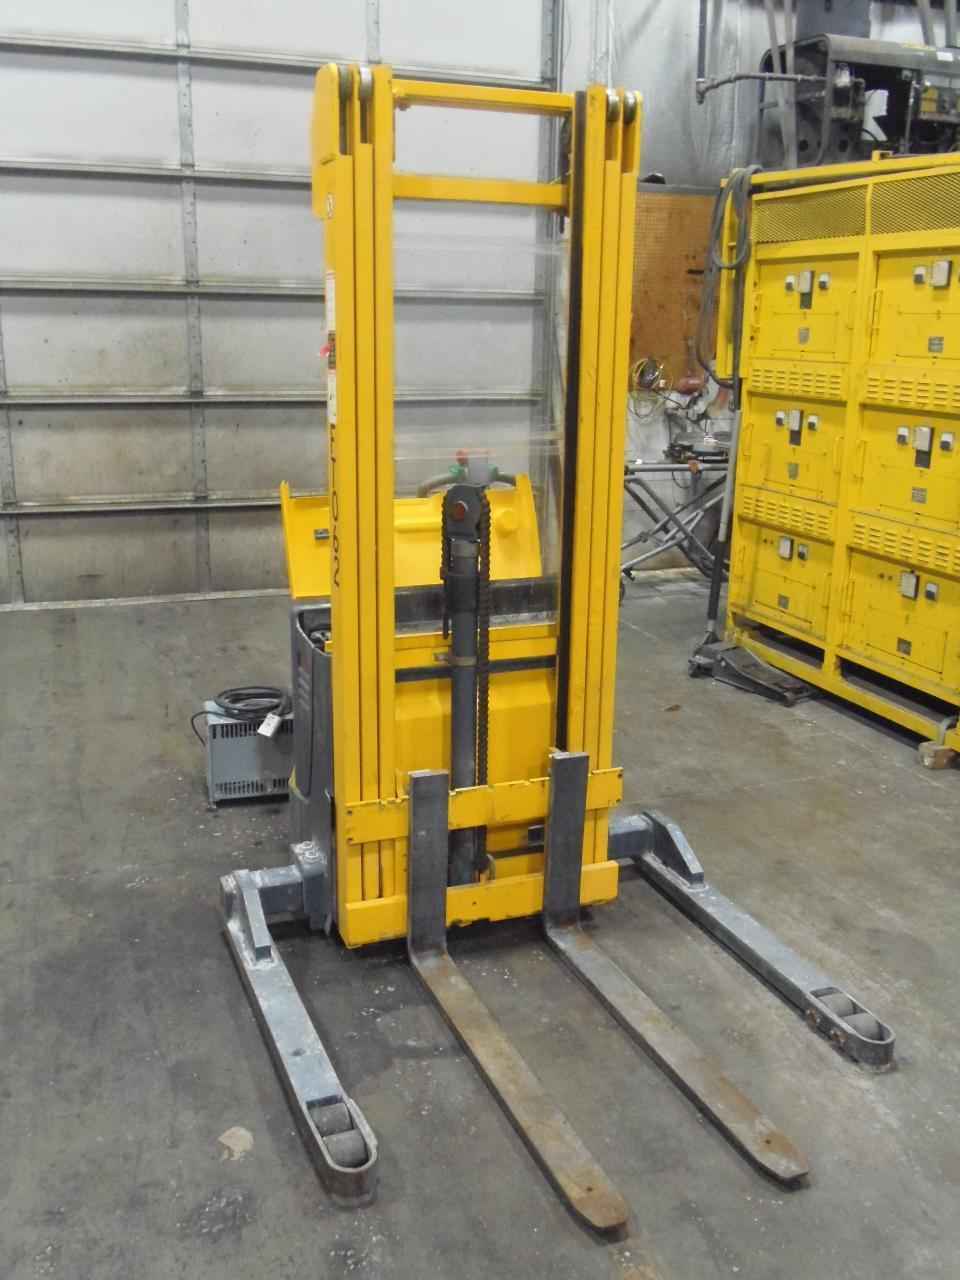 2500 LB. PALLET STACKER FORK LIFT, MULTITON EJB 25-206, 17' LIFT HEIGHT, GOOD BATTERIES, 2001